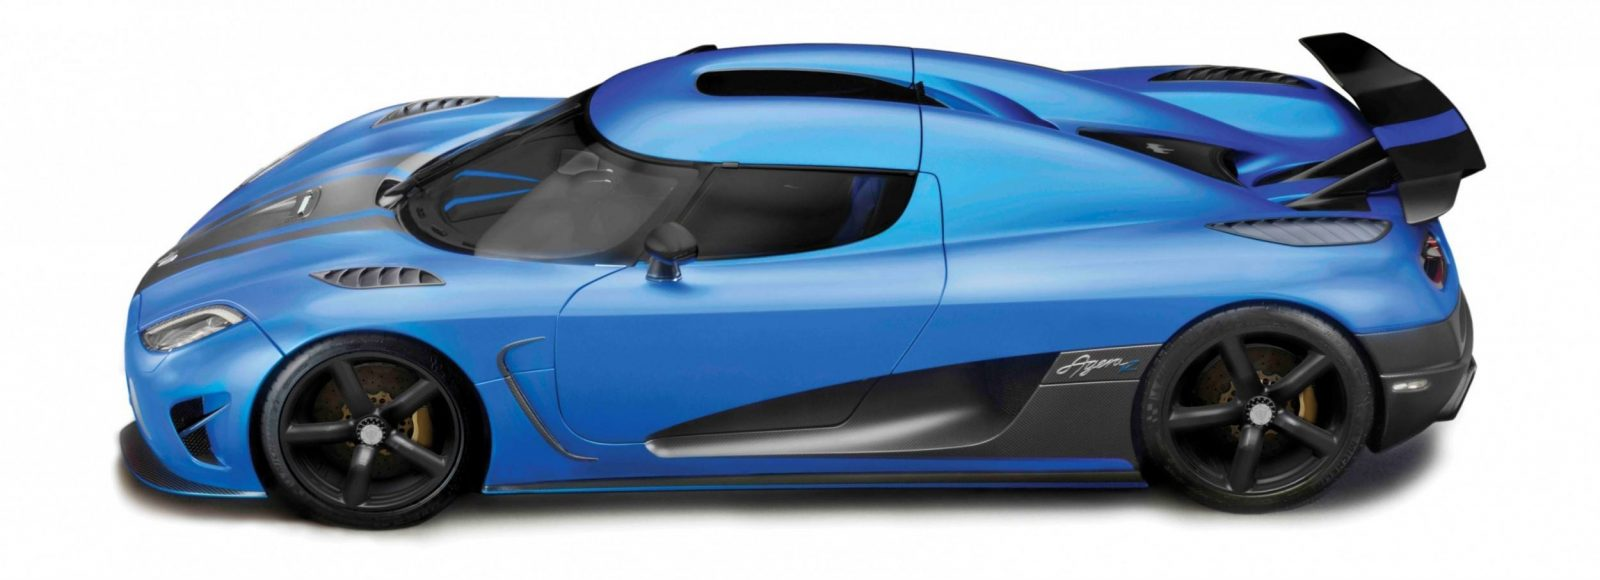 Koenigsegg Agera R Adds 240HP for Potential 280MPH Vmax of Generva-bound One1 Edition14